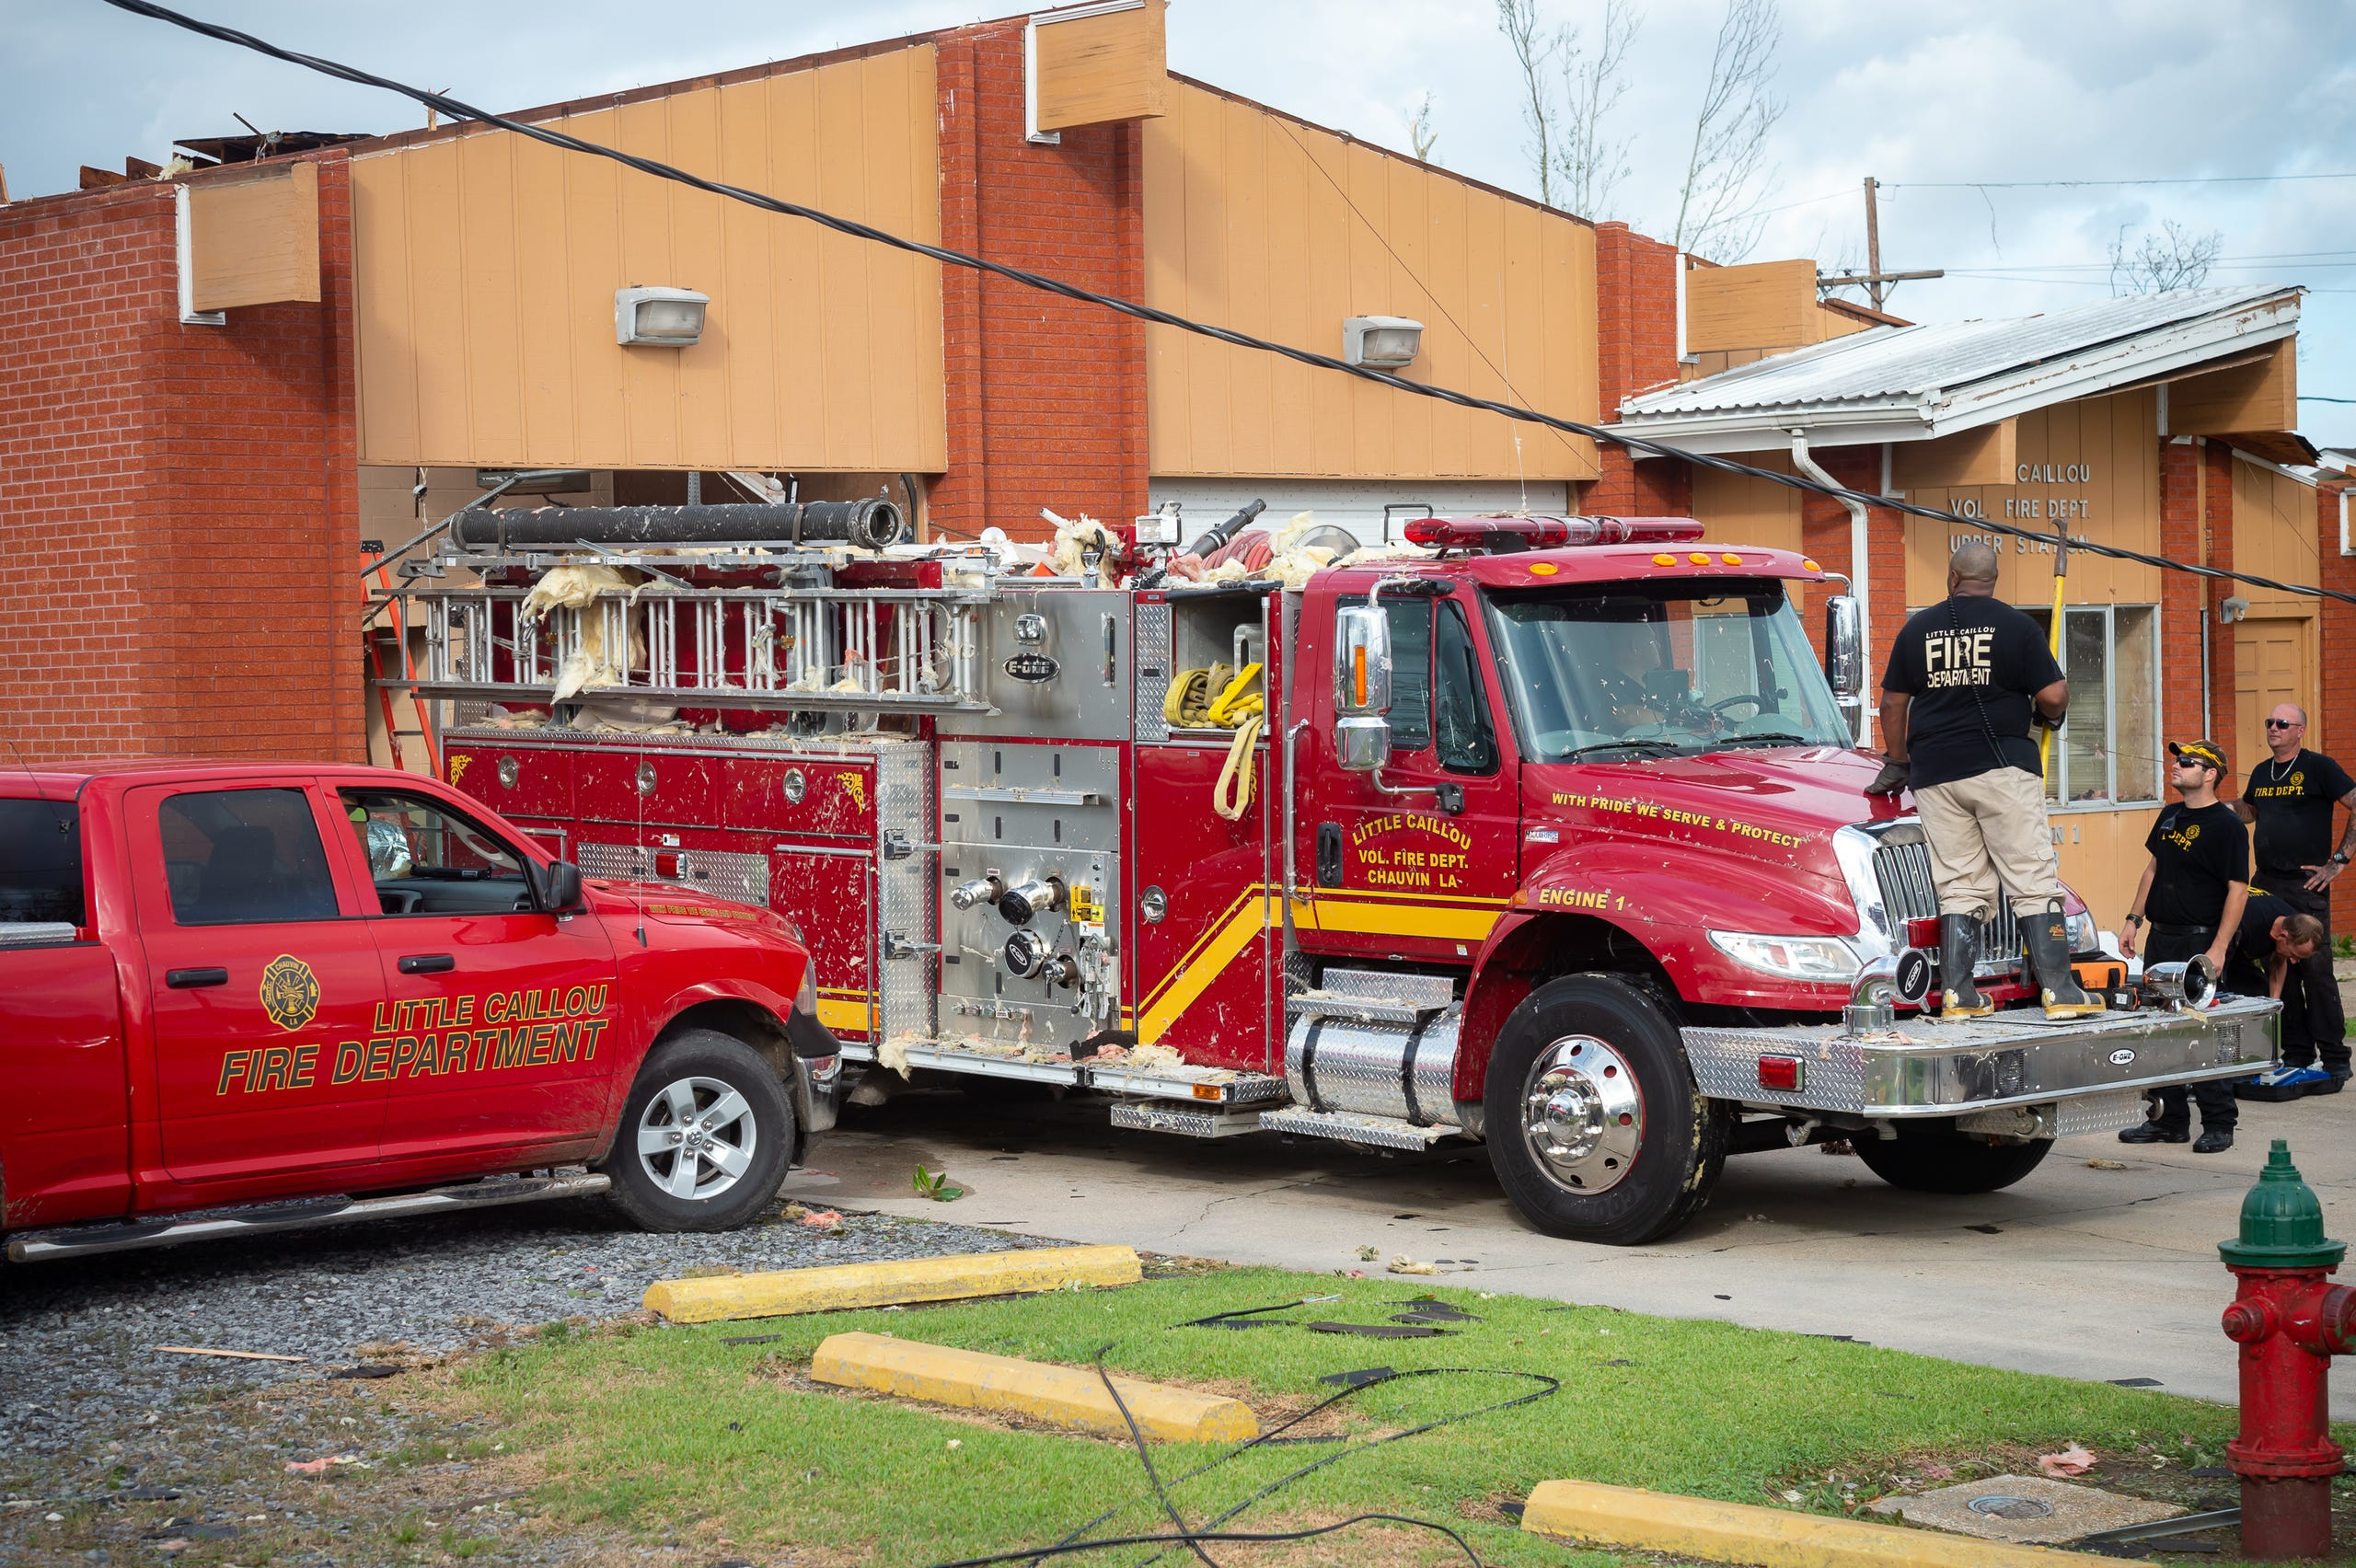 Firefighters work to remove truck from fire station in Little Callou after roof was blown off of the fire station by Hurricane Ida. Monday, Aug. 30, 2021.